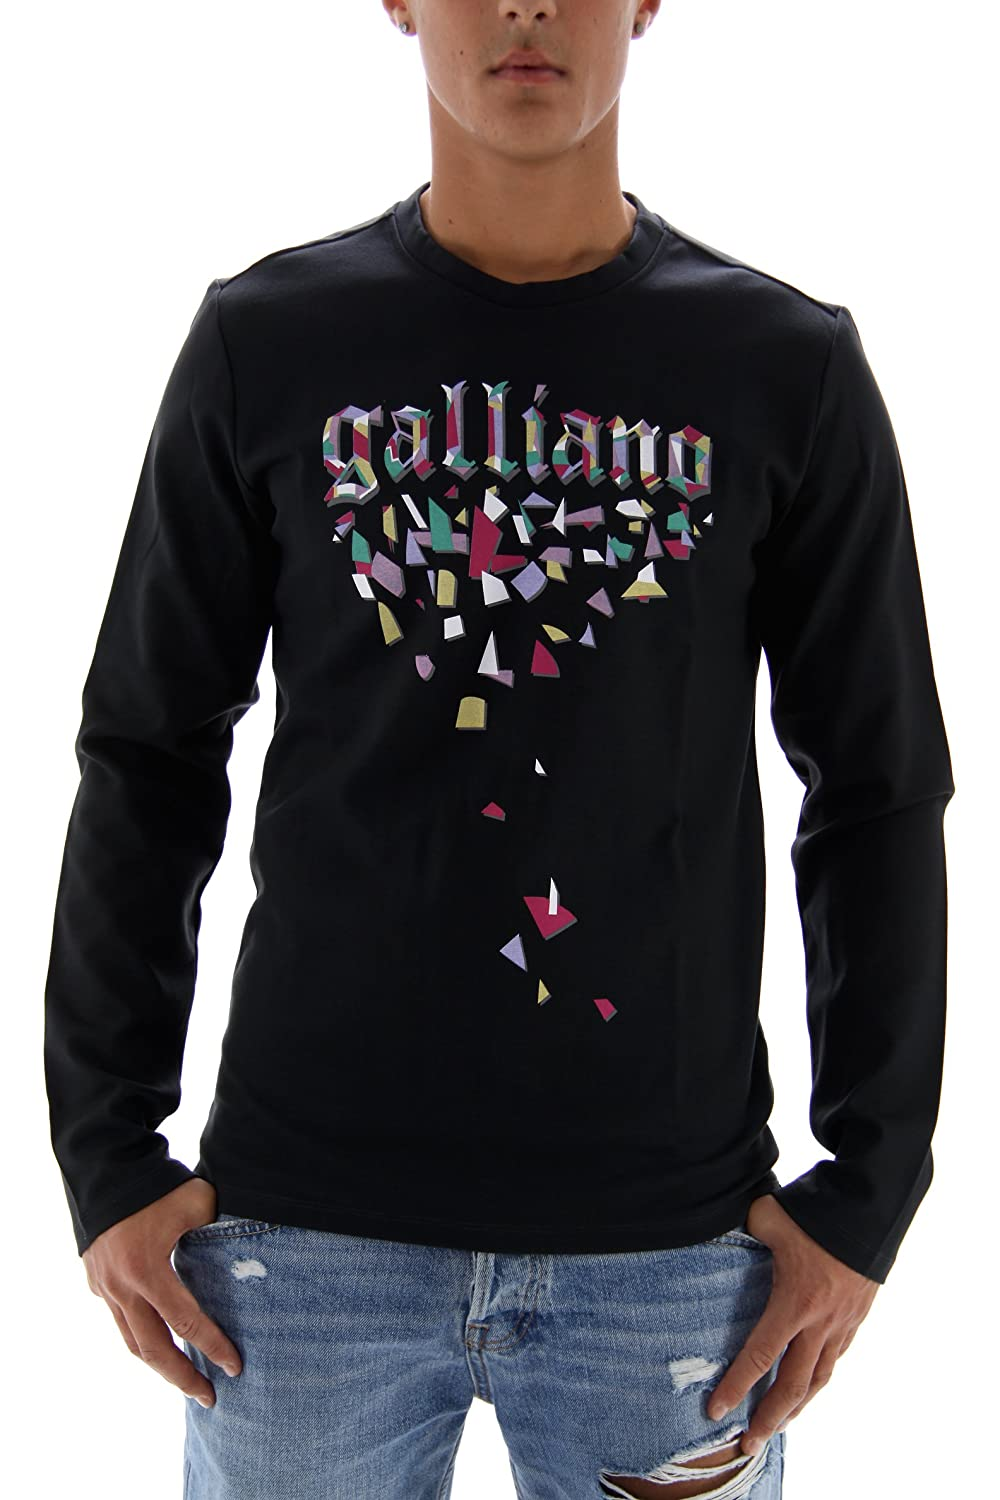 John Galliano Men's Sweatshirt Grey Charcoal Medium